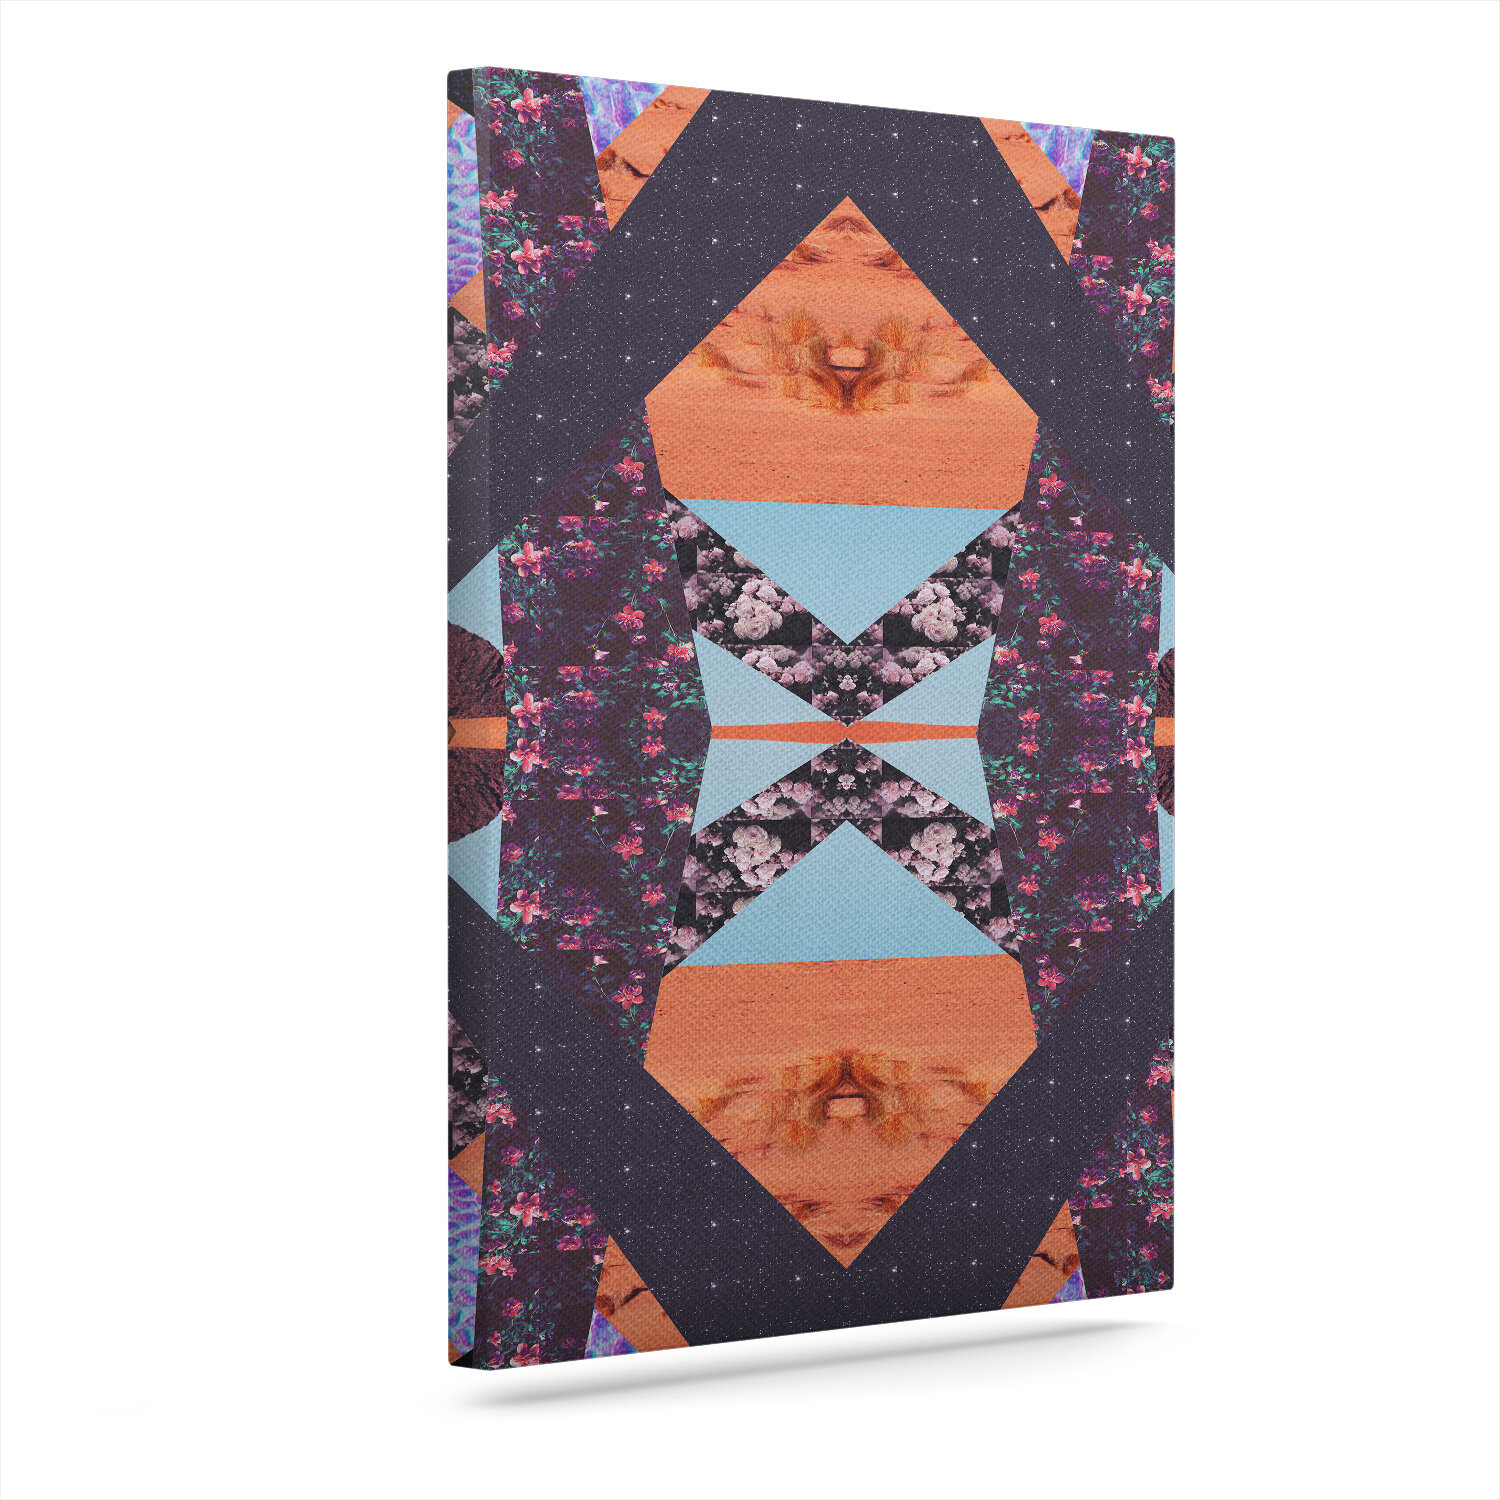 East Urban Home Pillow Kaleidoscope Graphic Art Print On Canvas